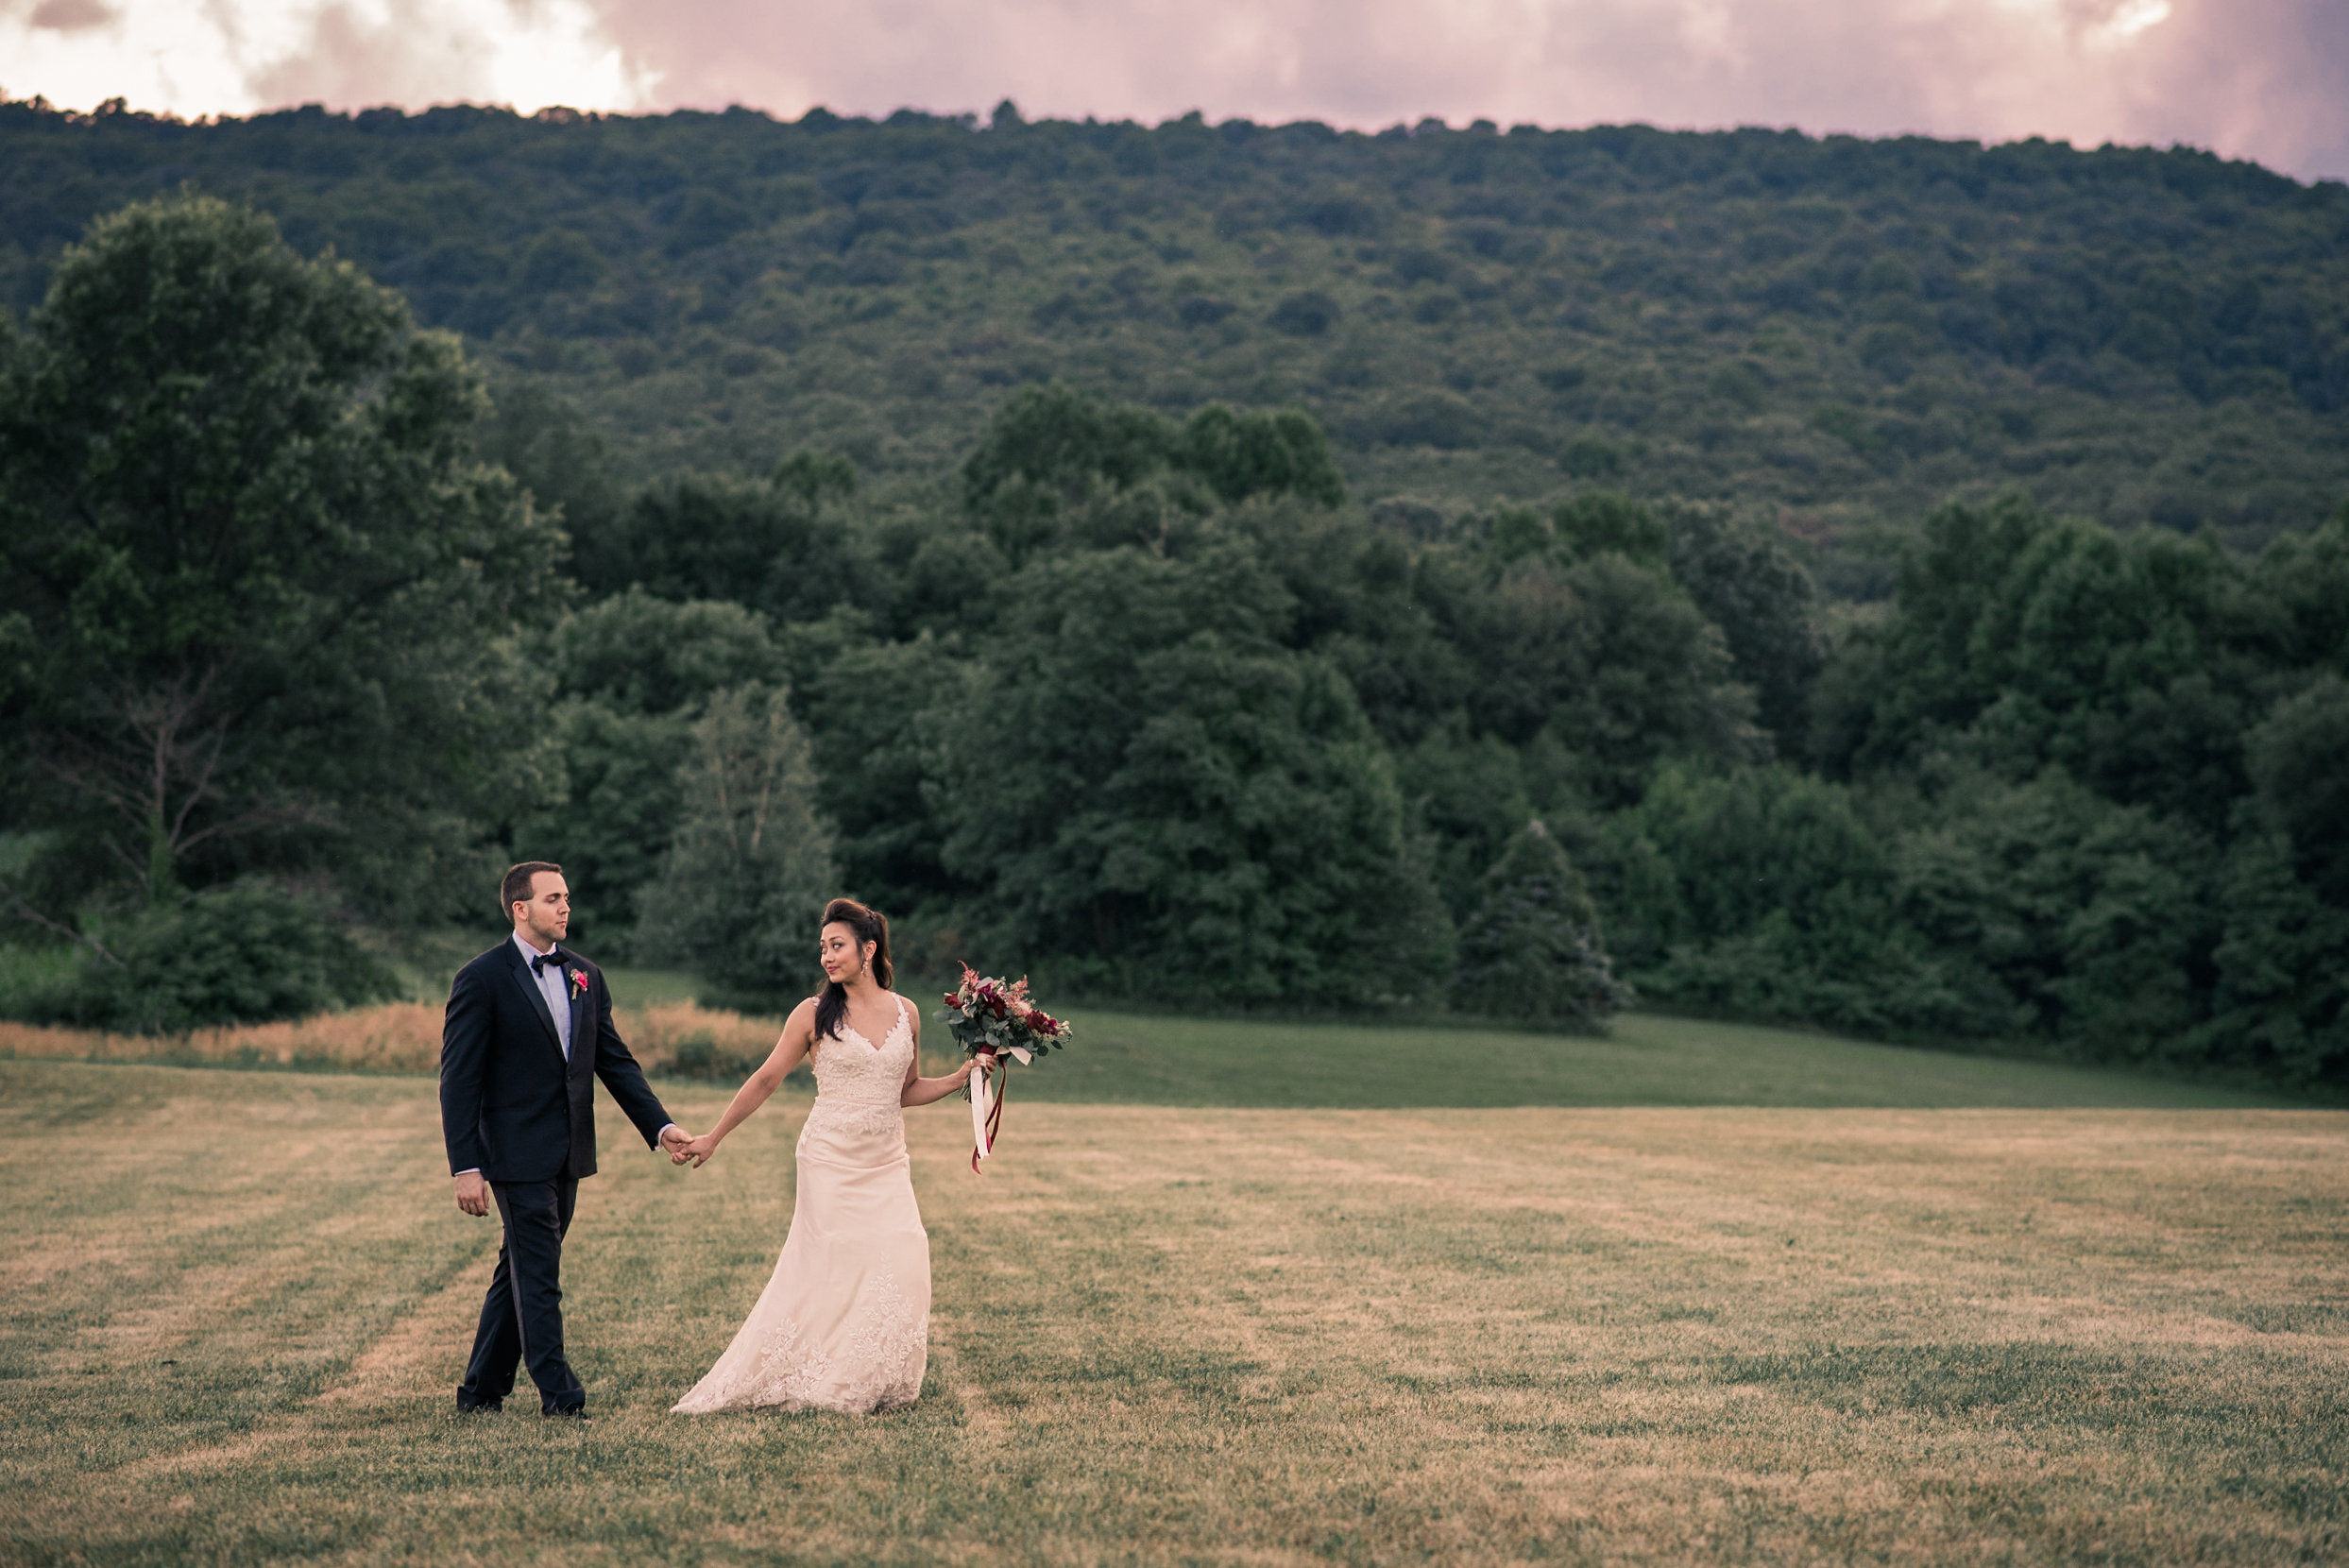 Bride and groom walking through field by mountain